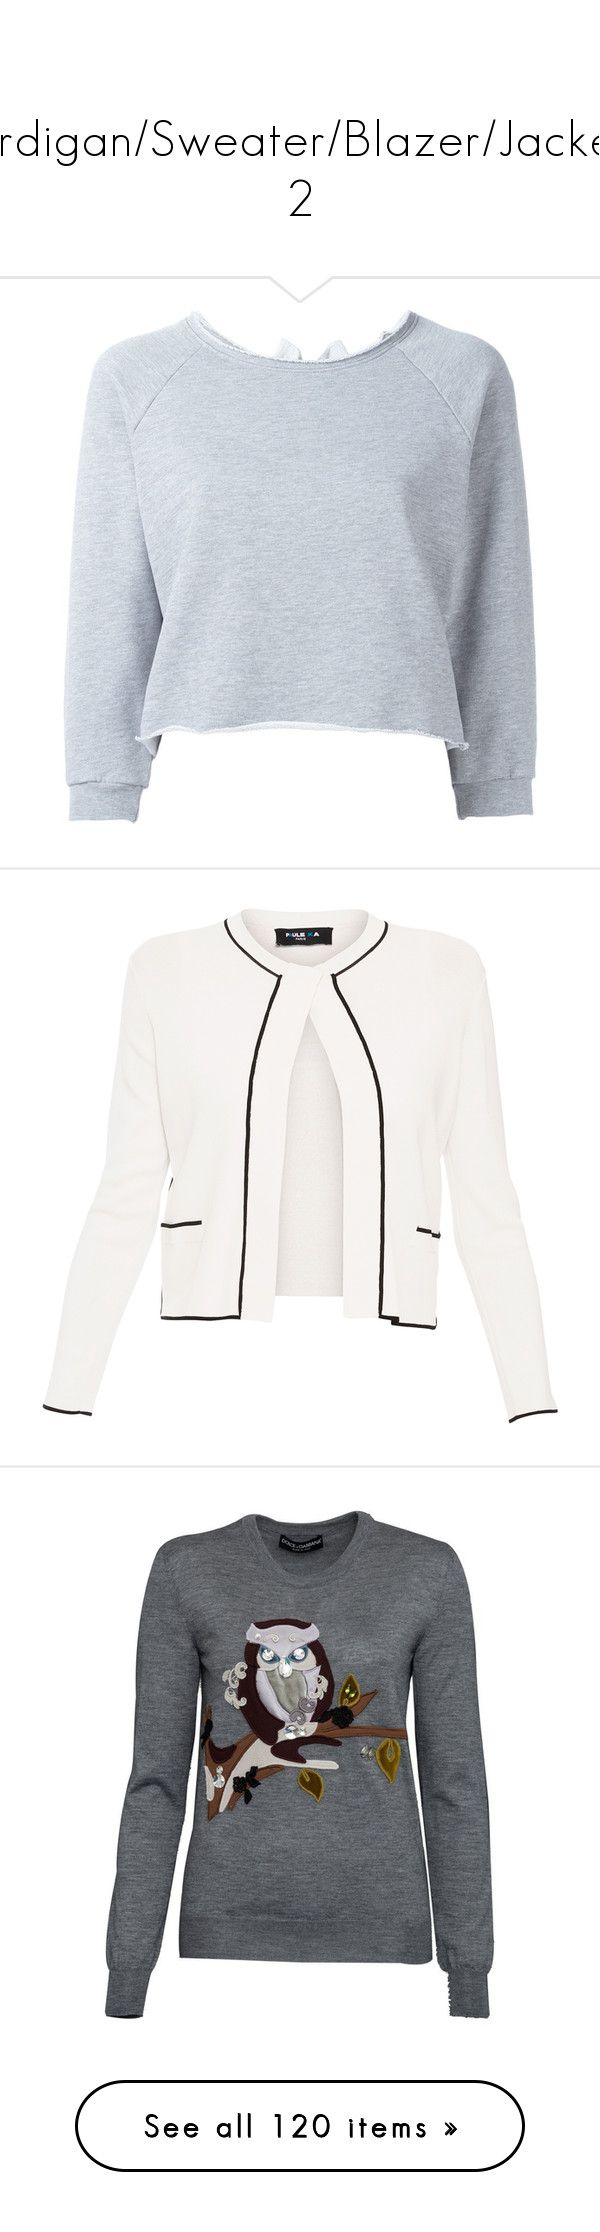 cardigan sweater blazer jacket 2 by lalittaaristha liked on polyvore